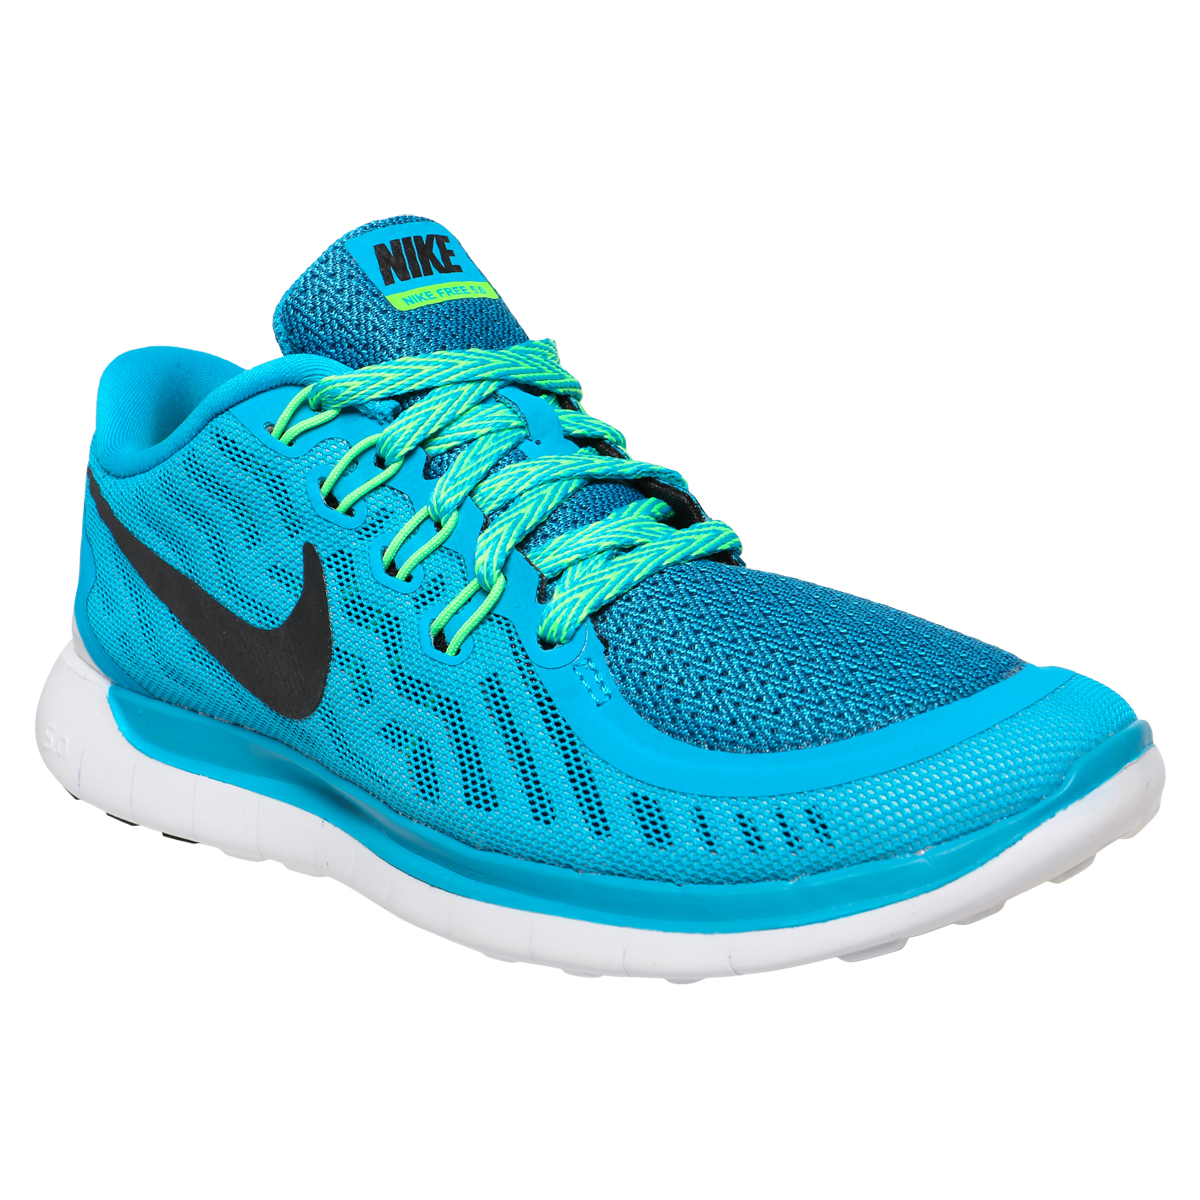 nike free 5.0 about